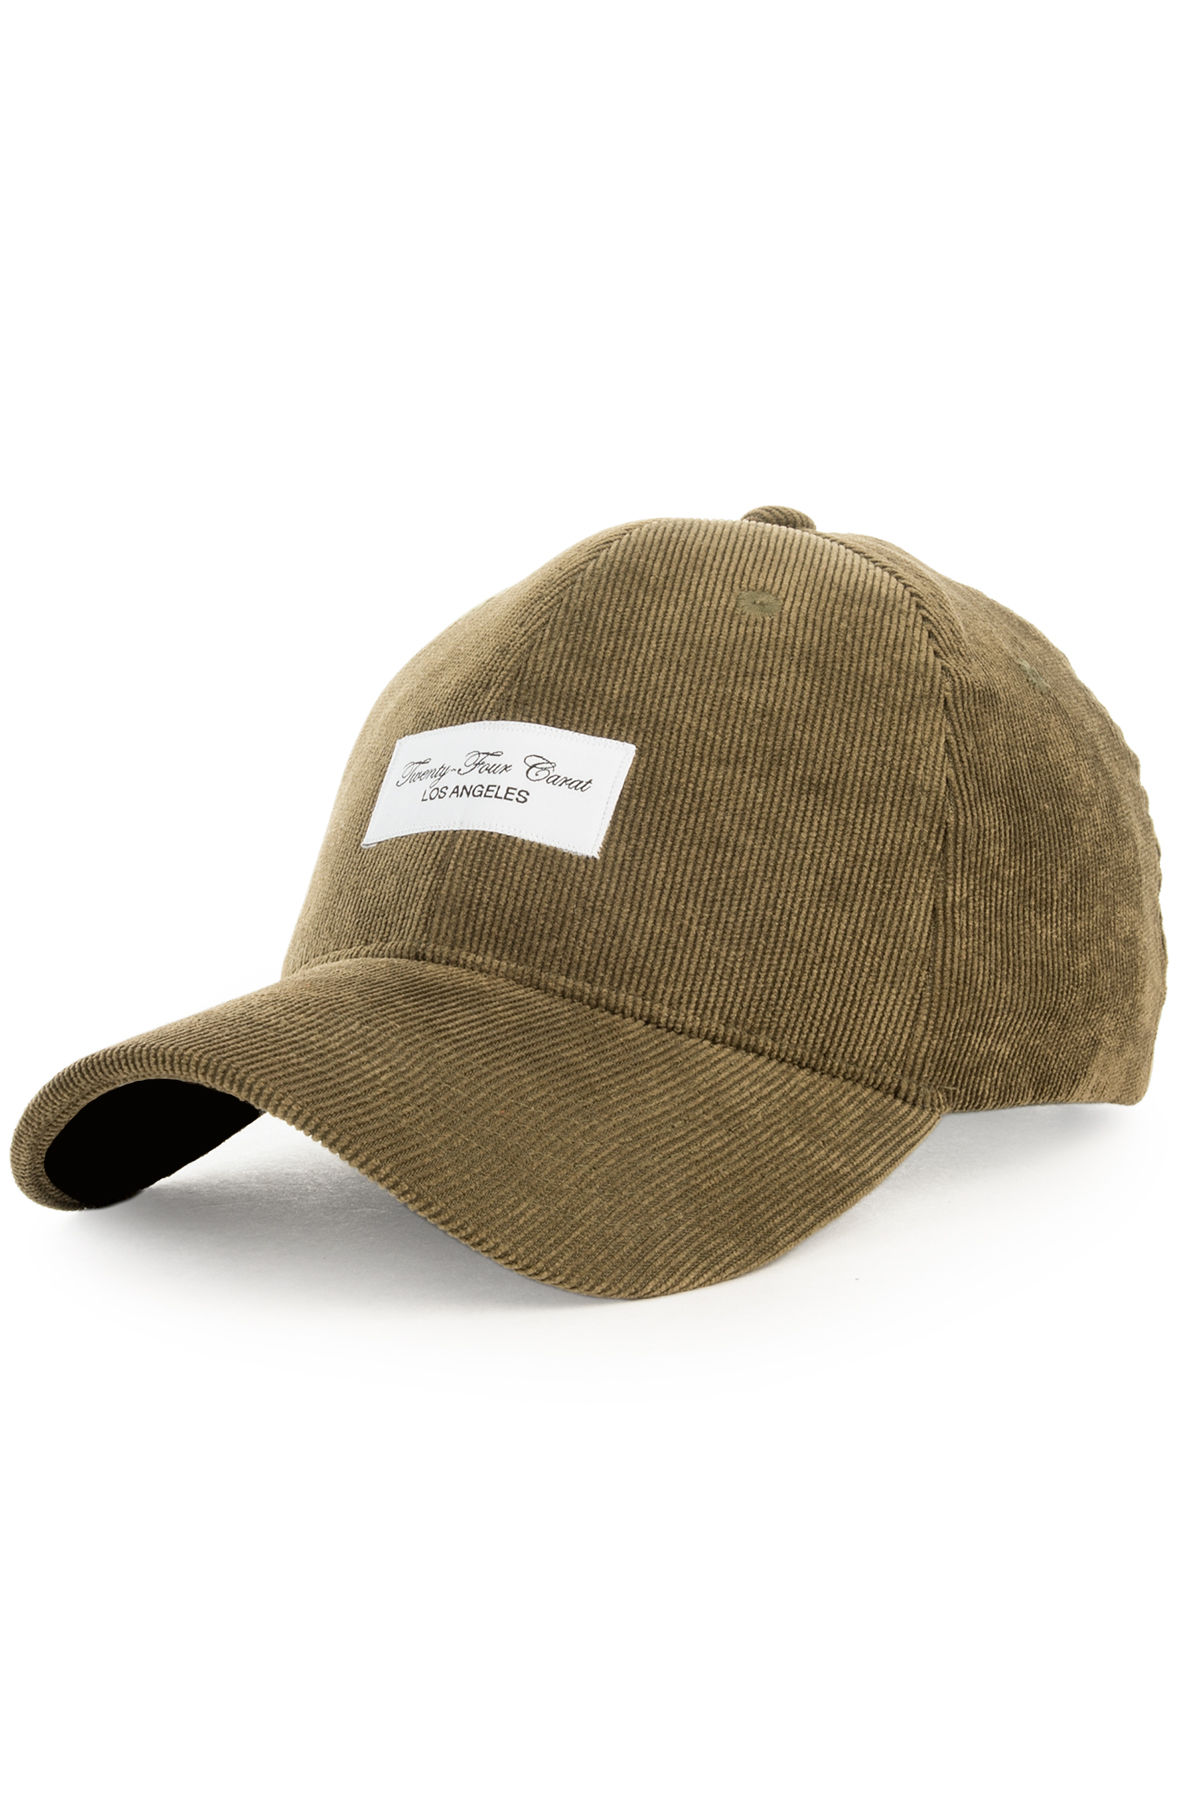 Image of The Corduroy Dad Cap in Olive